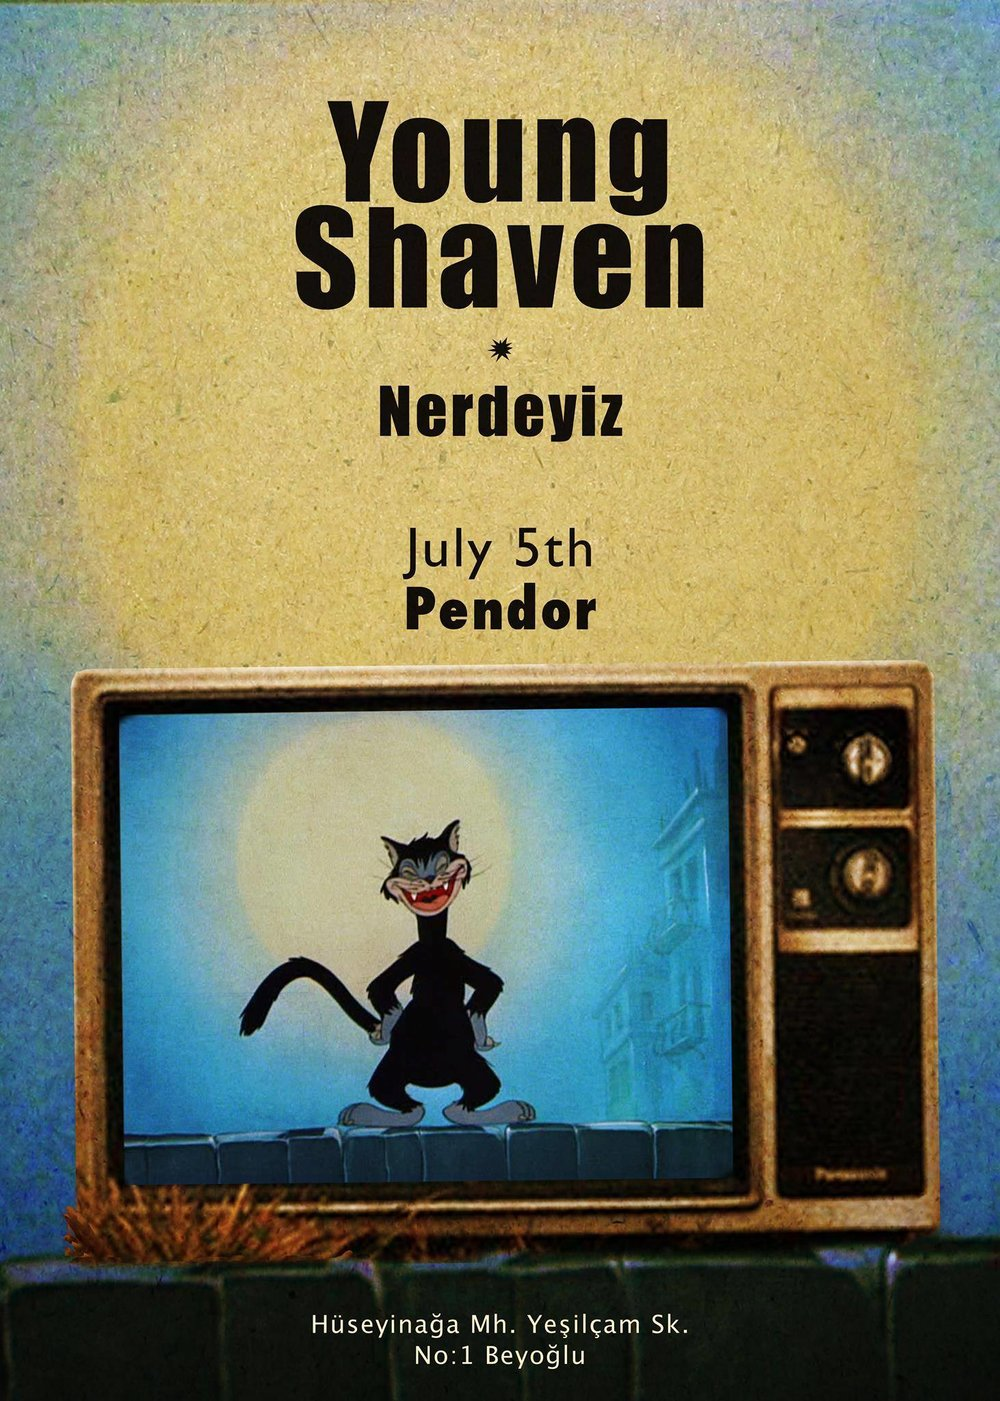 The Young Shaven Poster - Neredeyiz